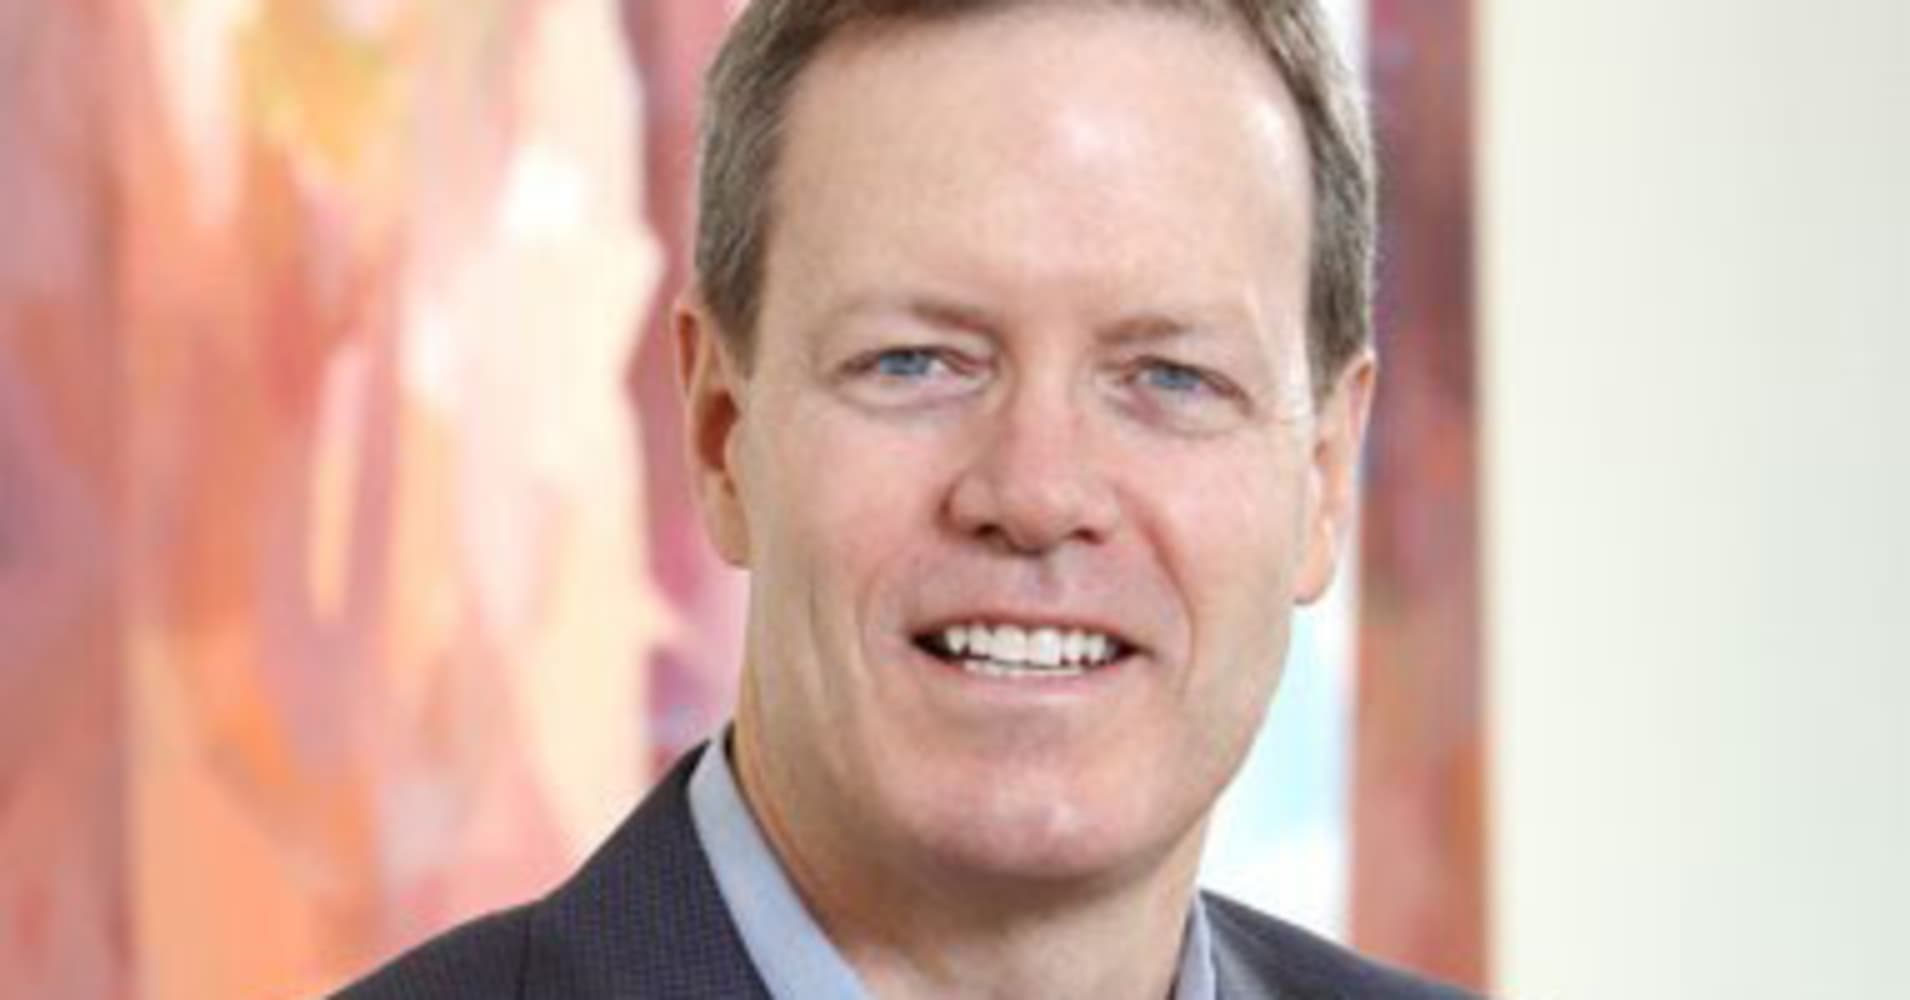 3M appoints Michael Roman as CEO; Inge Thulin will take new position as executive chairman of the board